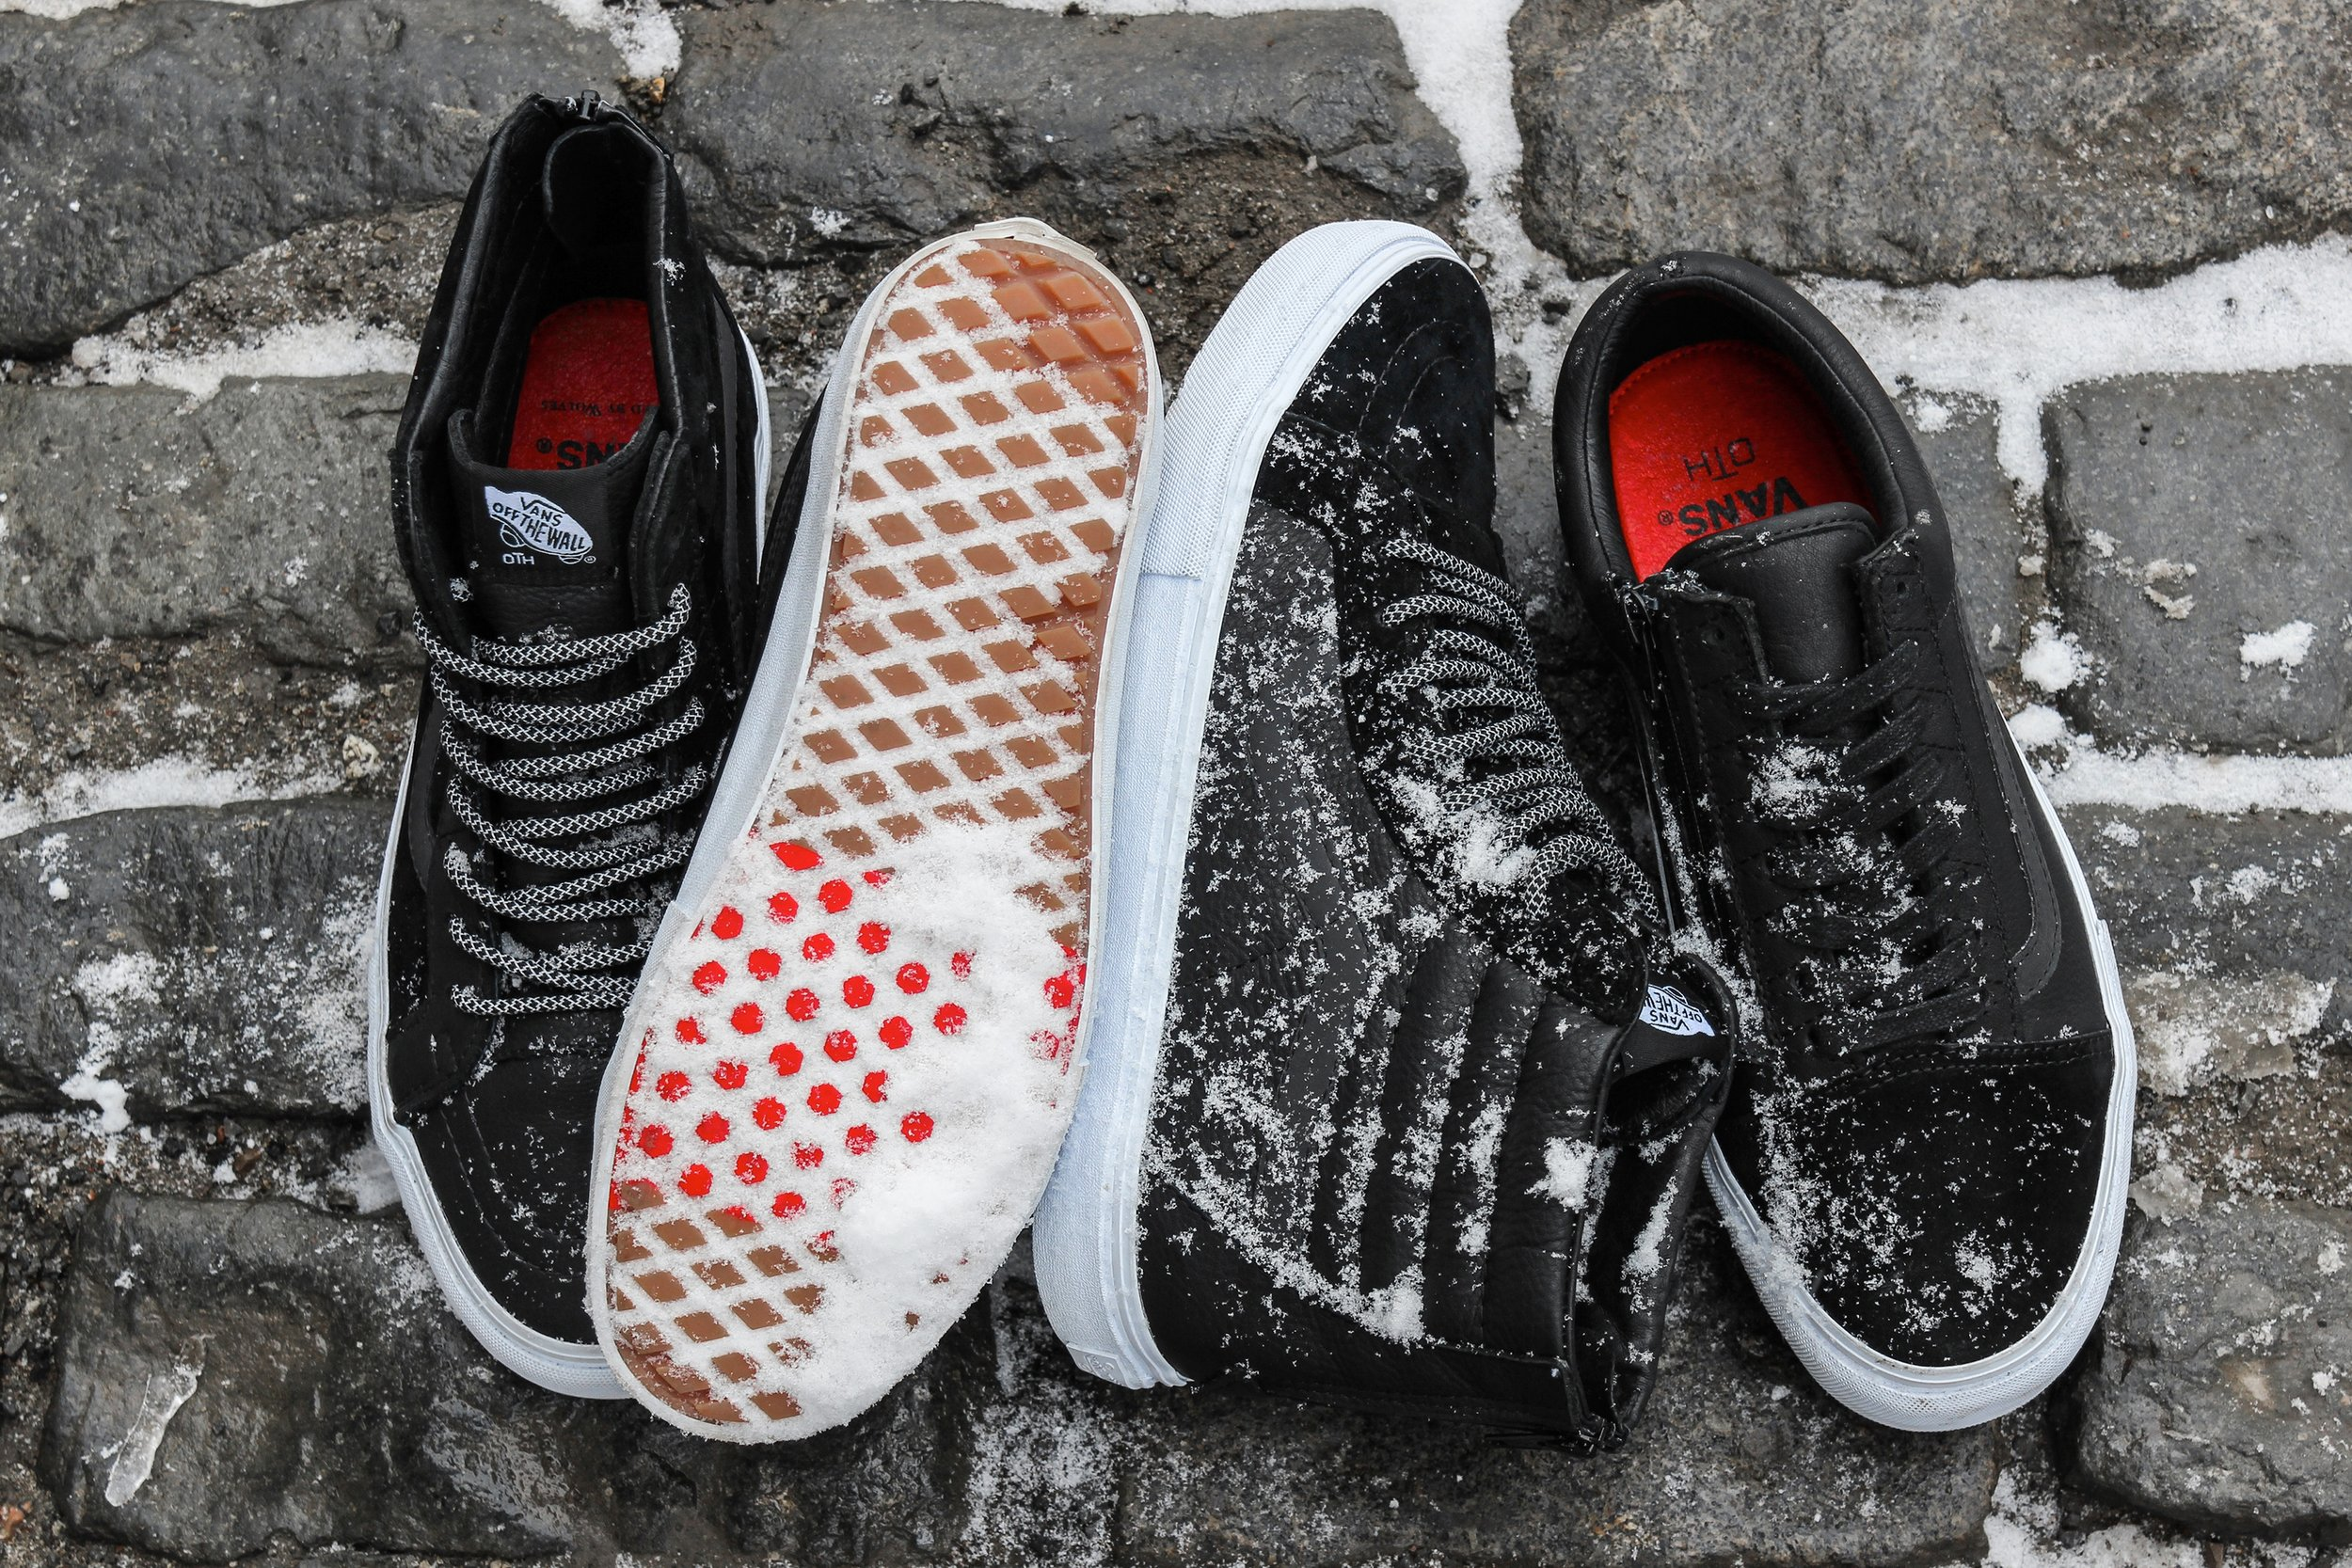 the-raised-by-wolves-x-oth-x-vans-pack-is-fit-for-bracing-the-elements-04.jpg